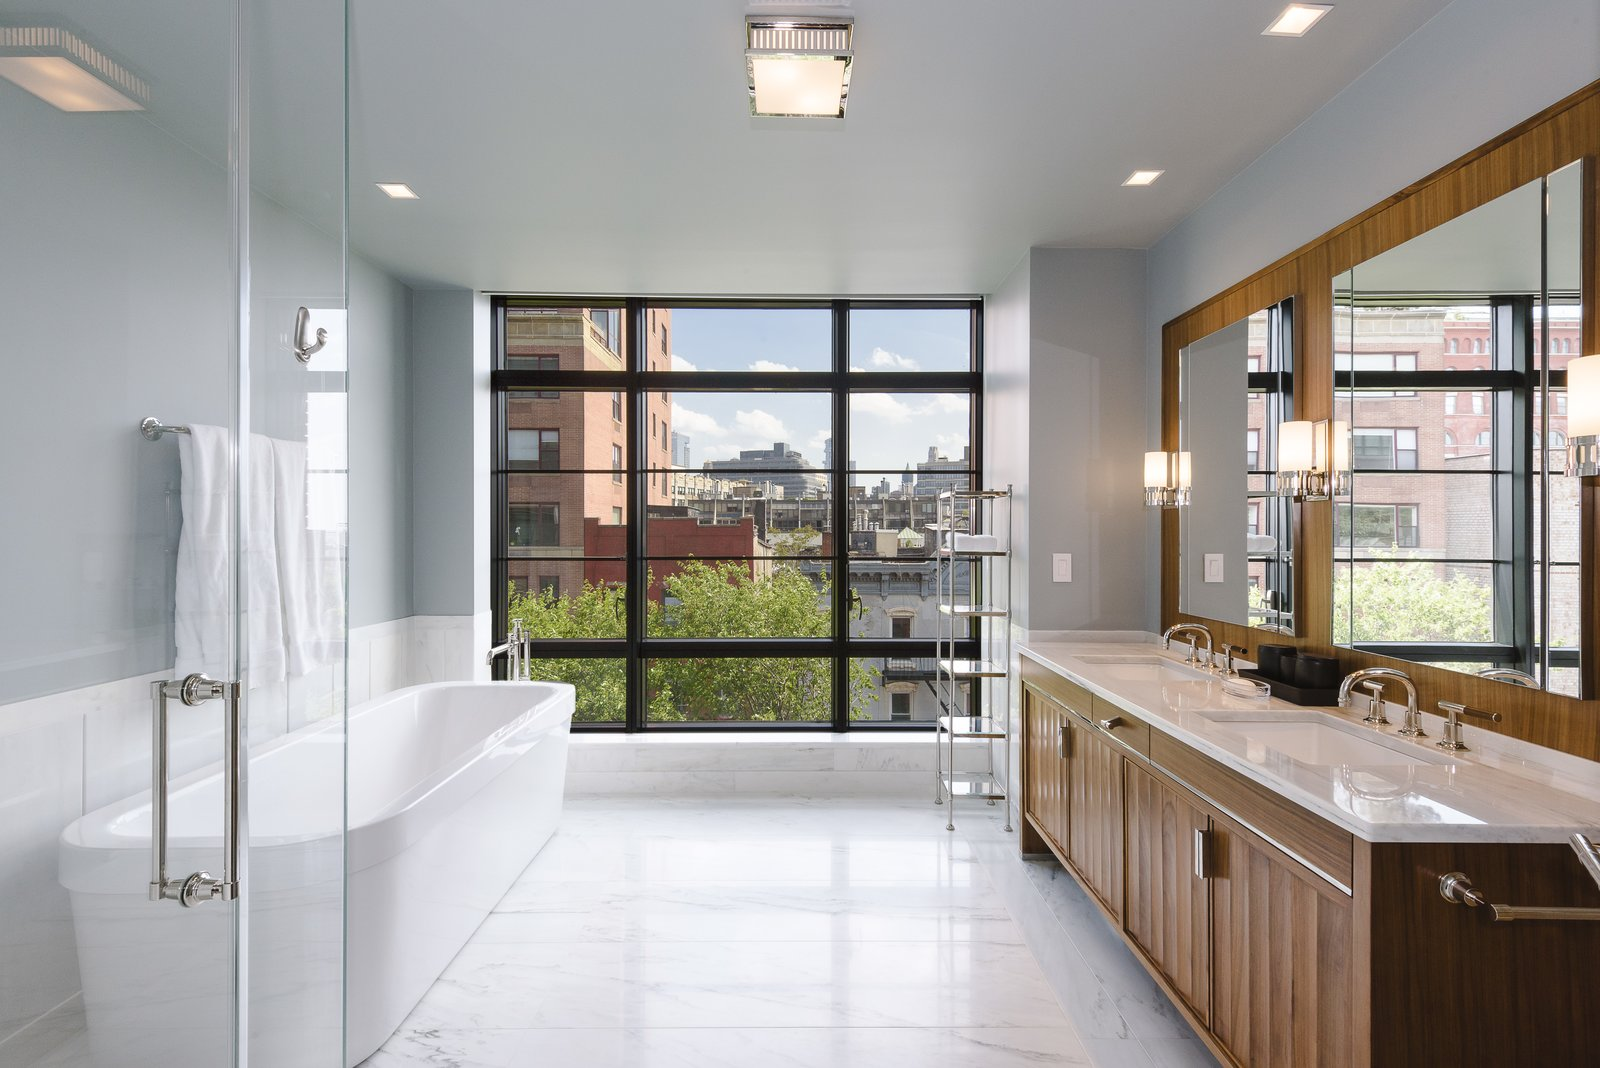 Bath Room, Marble Counter, Ceiling Lighting, Drop In Sink, Enclosed Shower, Freestanding Tub, and Travertine Floor The luxurious master bath has a double vanity, soaking tub, glass enclosed stall shower and wall of windows.  Best Photos from Jon Bon Jovi Sells His West Village Duplex For $16M